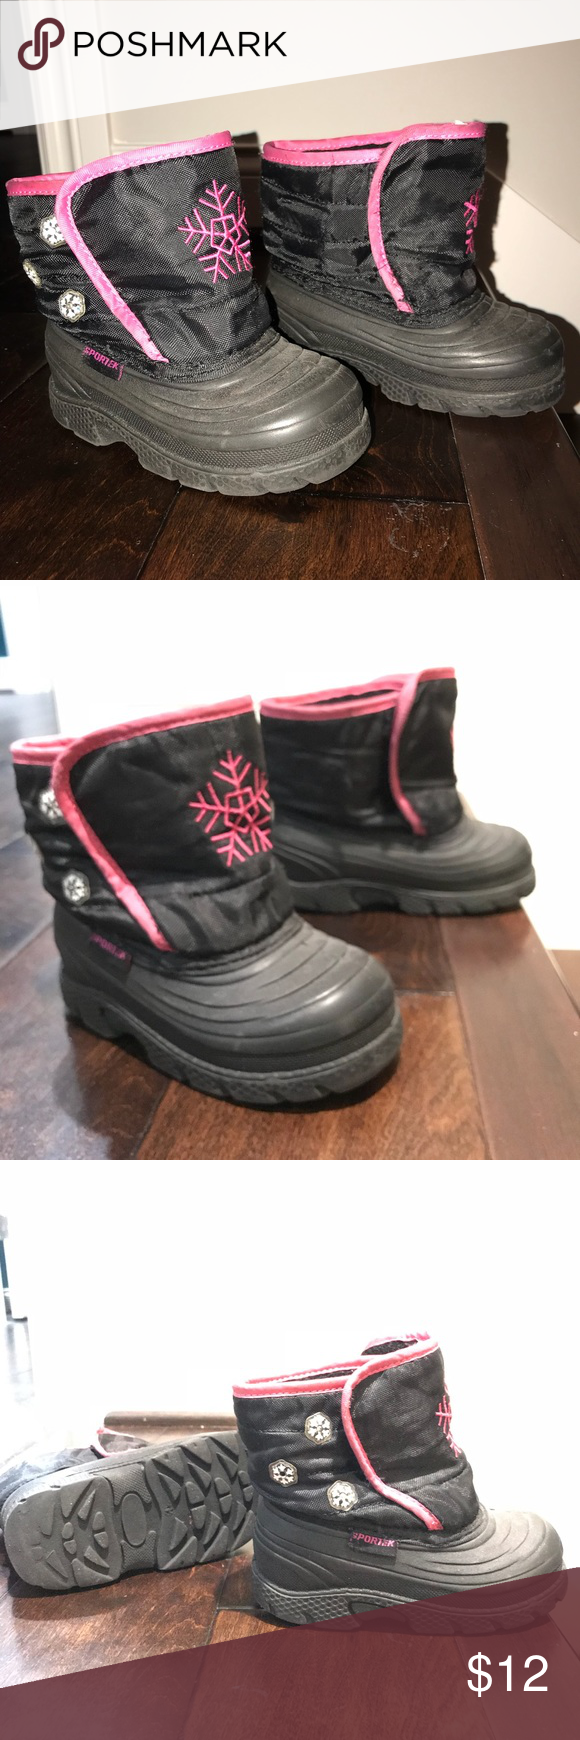 Sportek Girl Snow Boot Size 8 Girls Snow Boots Boots Snow Boots New and used items, cars, real estate, jobs, services, vacation rentals and more virtually anywhere in ontario. pinterest